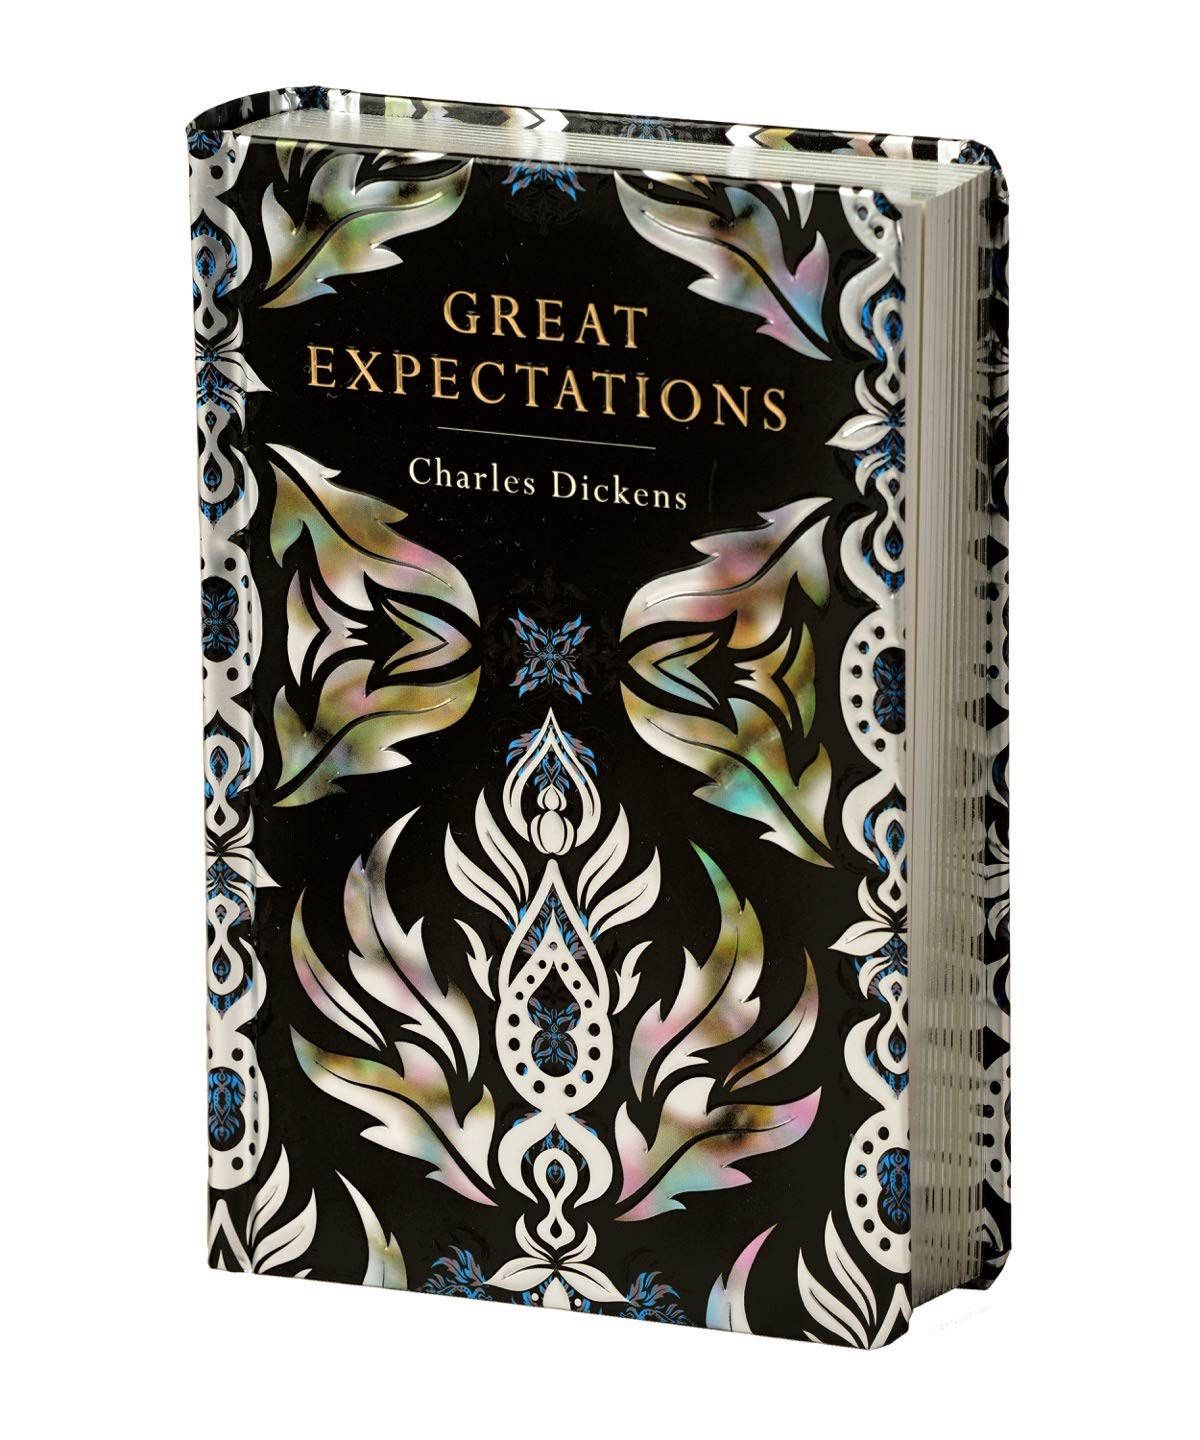 charles dickens great expectations chiltern cover